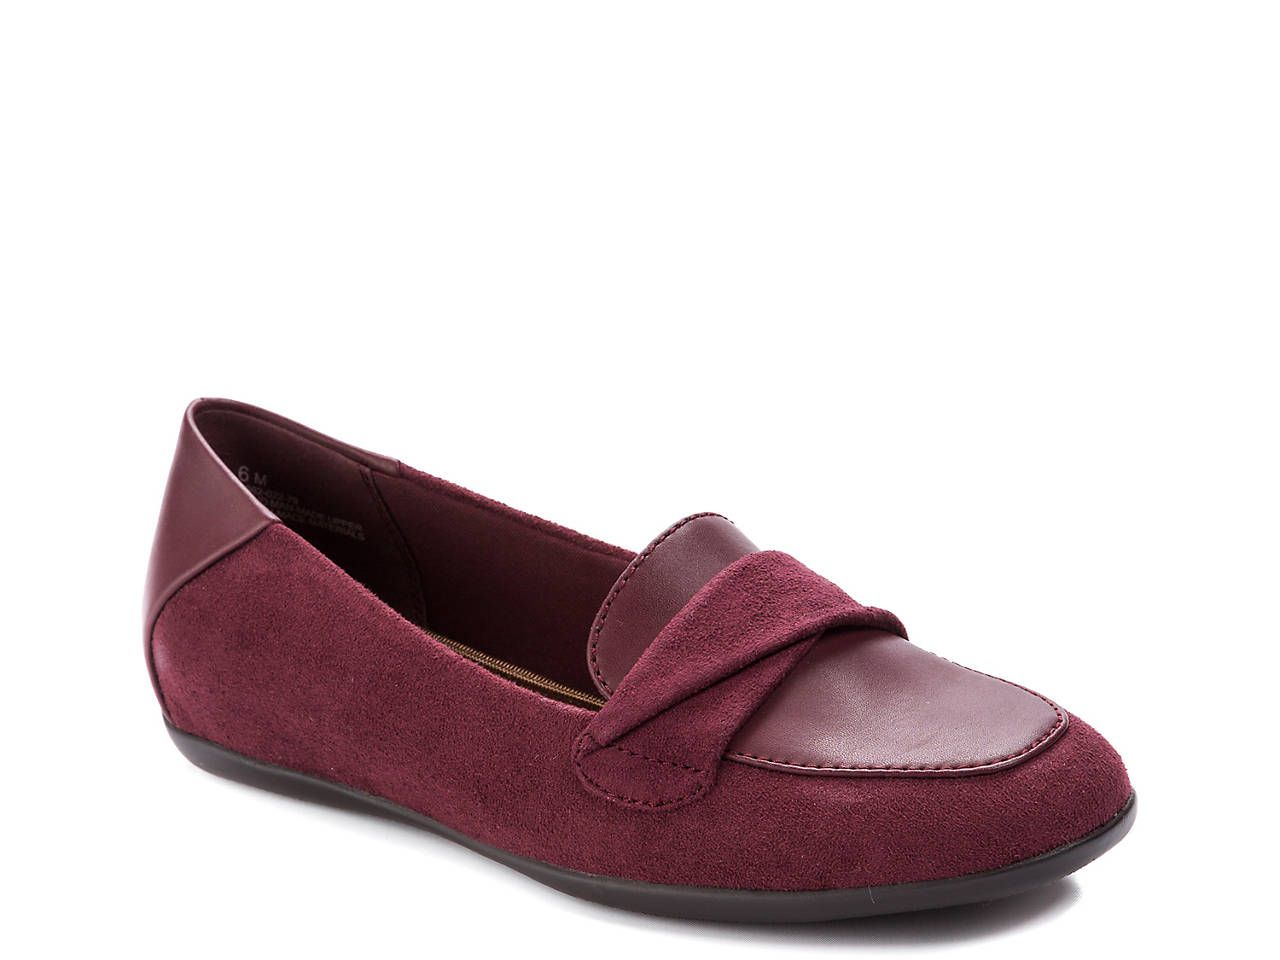 Juliya Loafer by Bare Traps